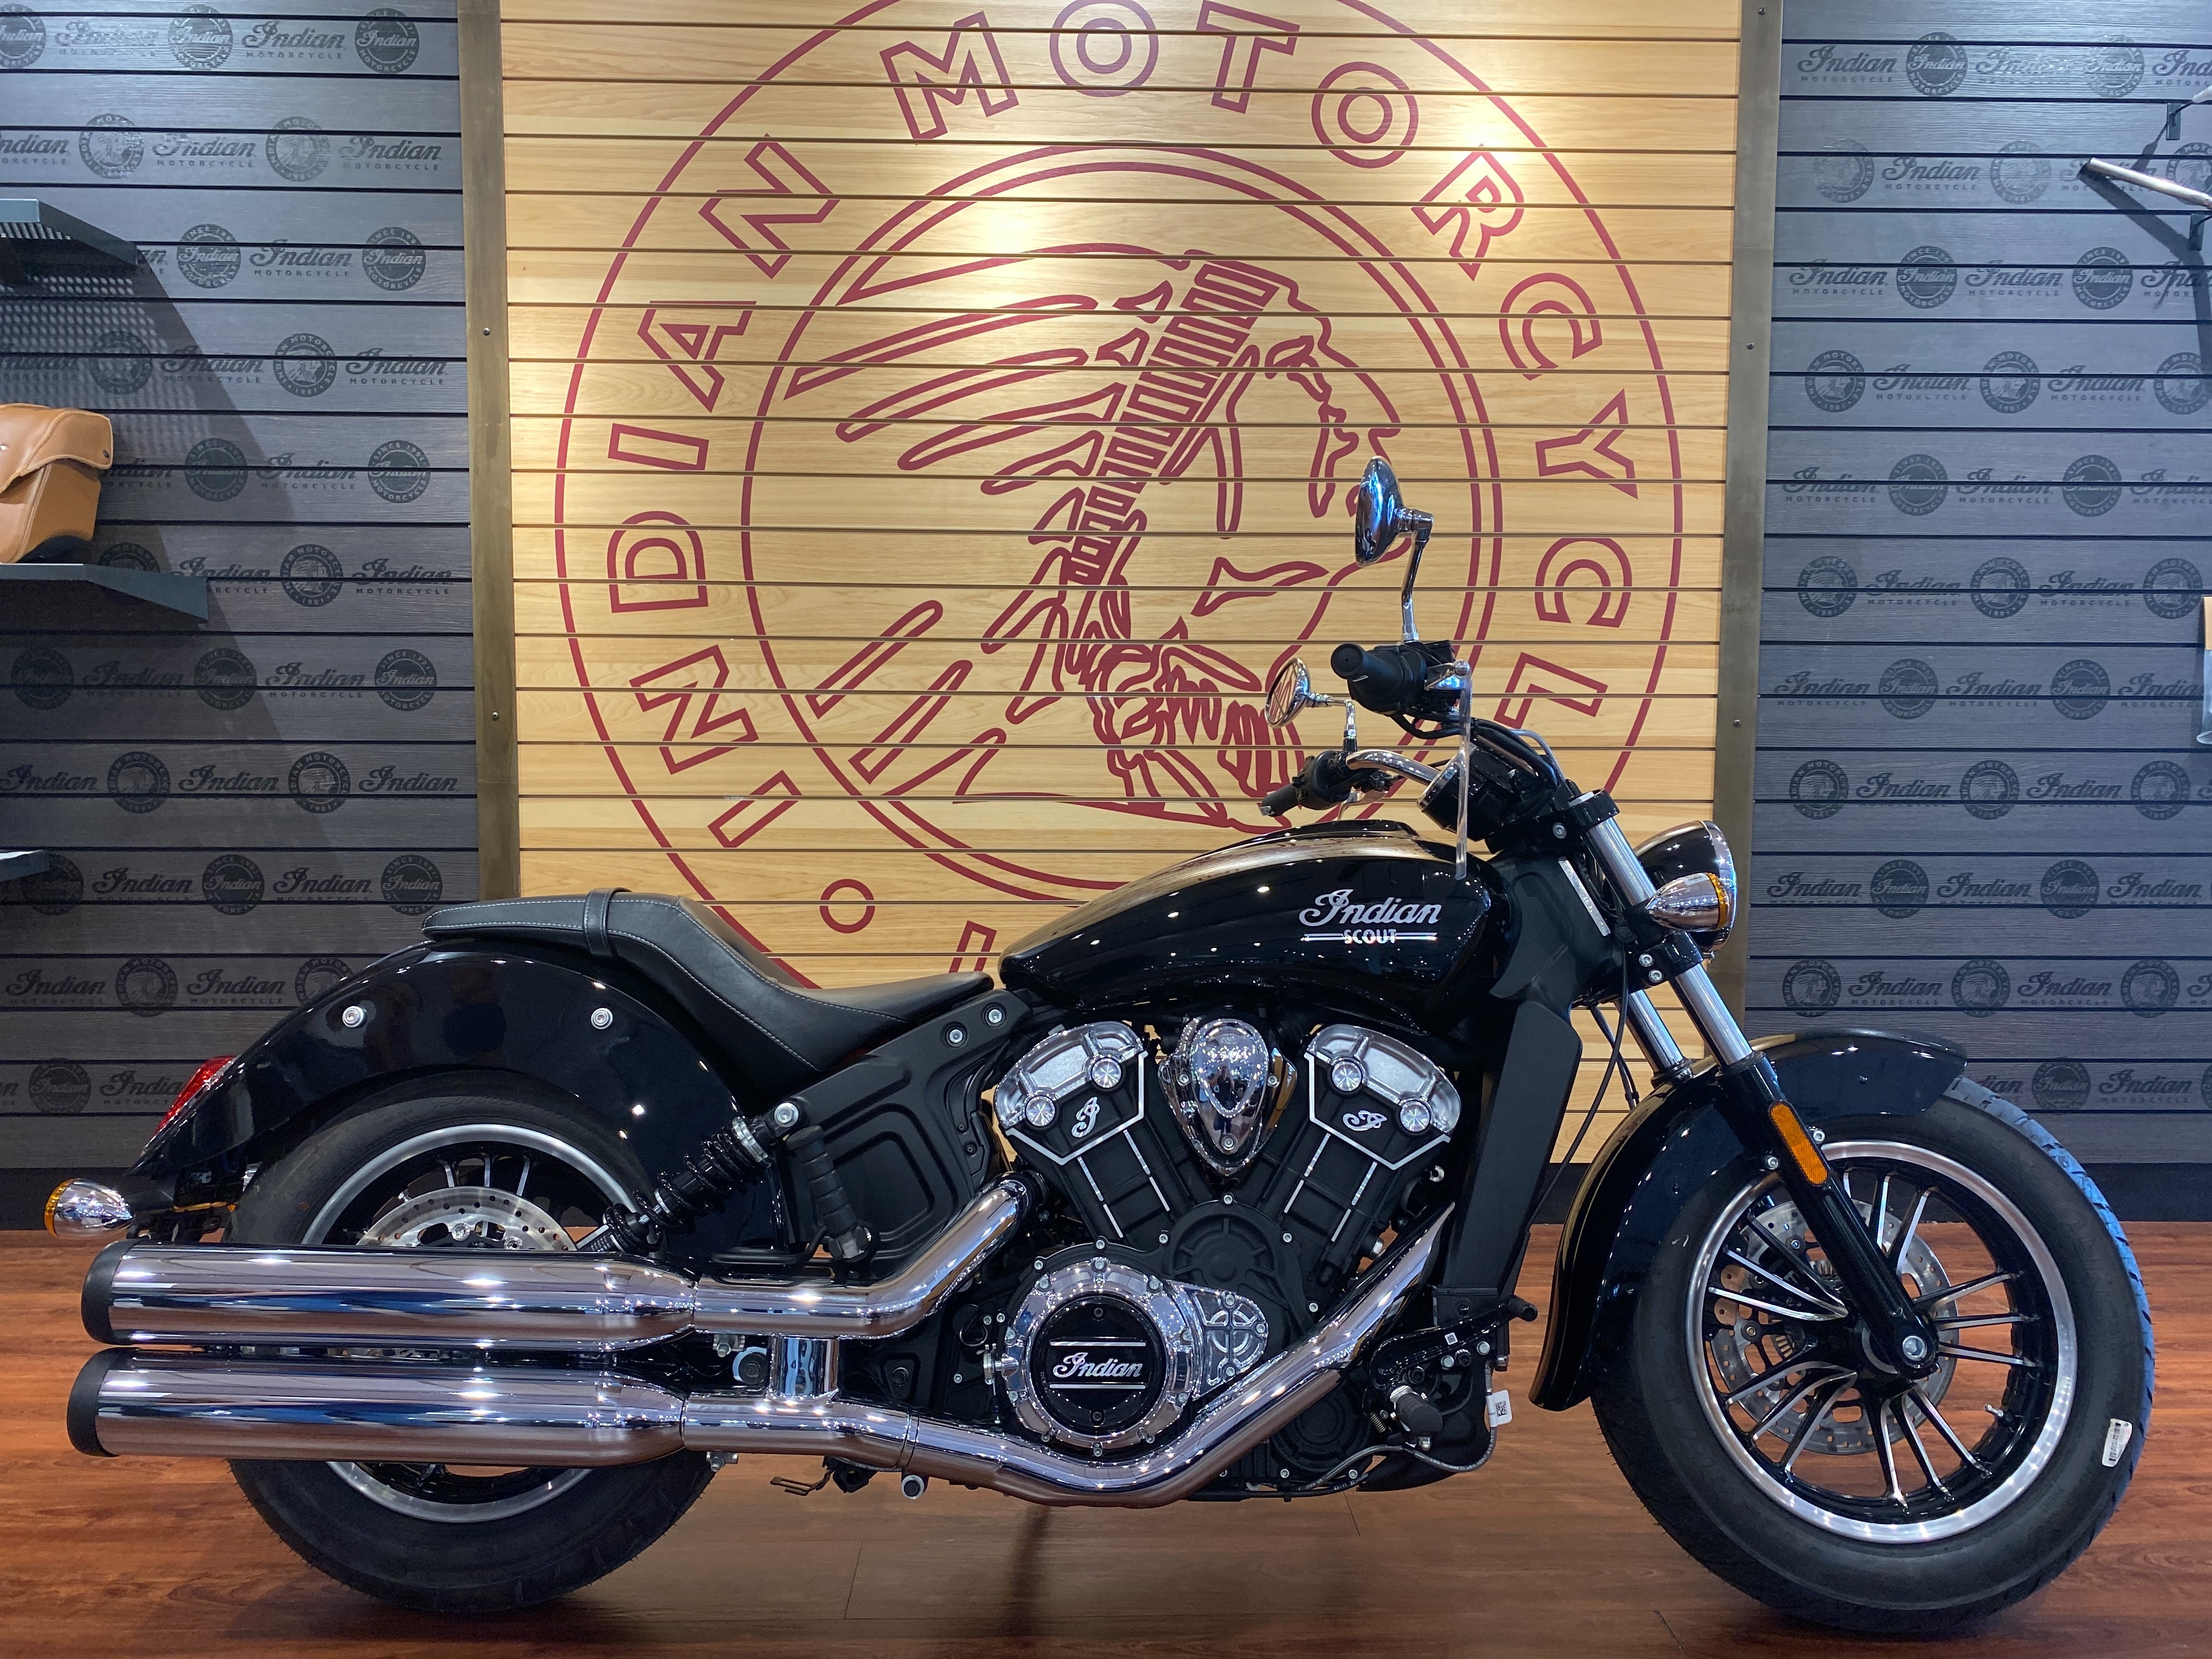 2021 Indian Scout Scout - ABS at Sloans Motorcycle ATV, Murfreesboro, TN, 37129